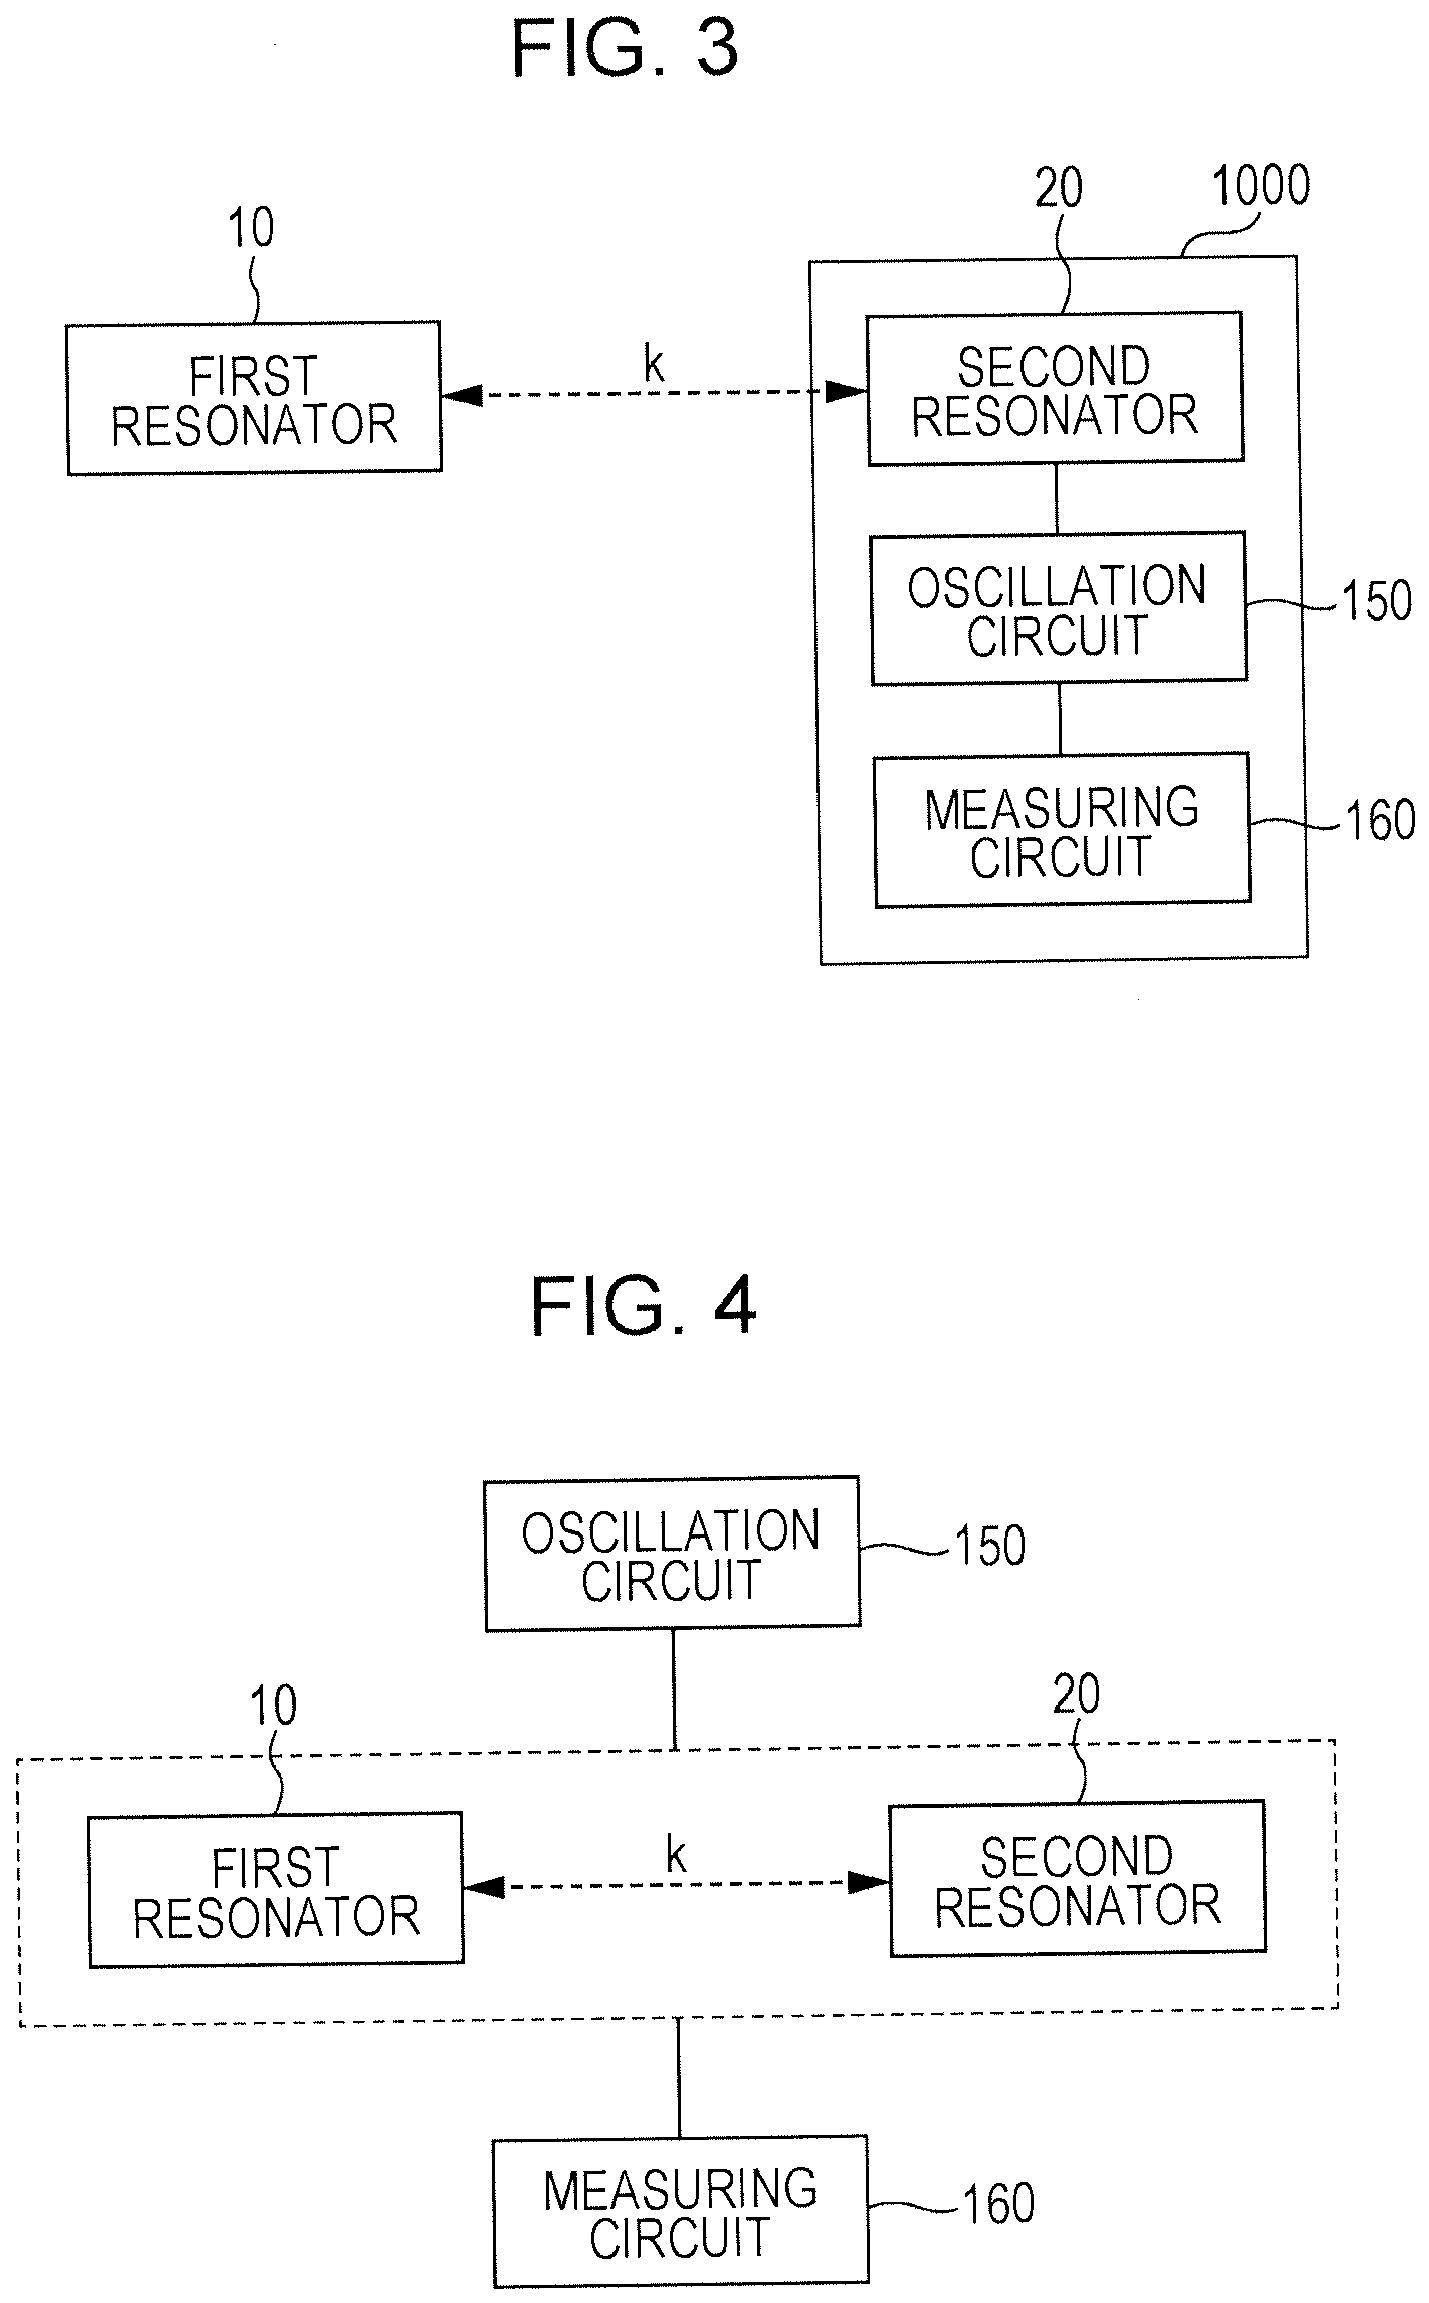 Power Transmission Apparatus And Reception For Inductive Proximity Sensor Comprising A Resonant Oscillatory Circuit Drawing